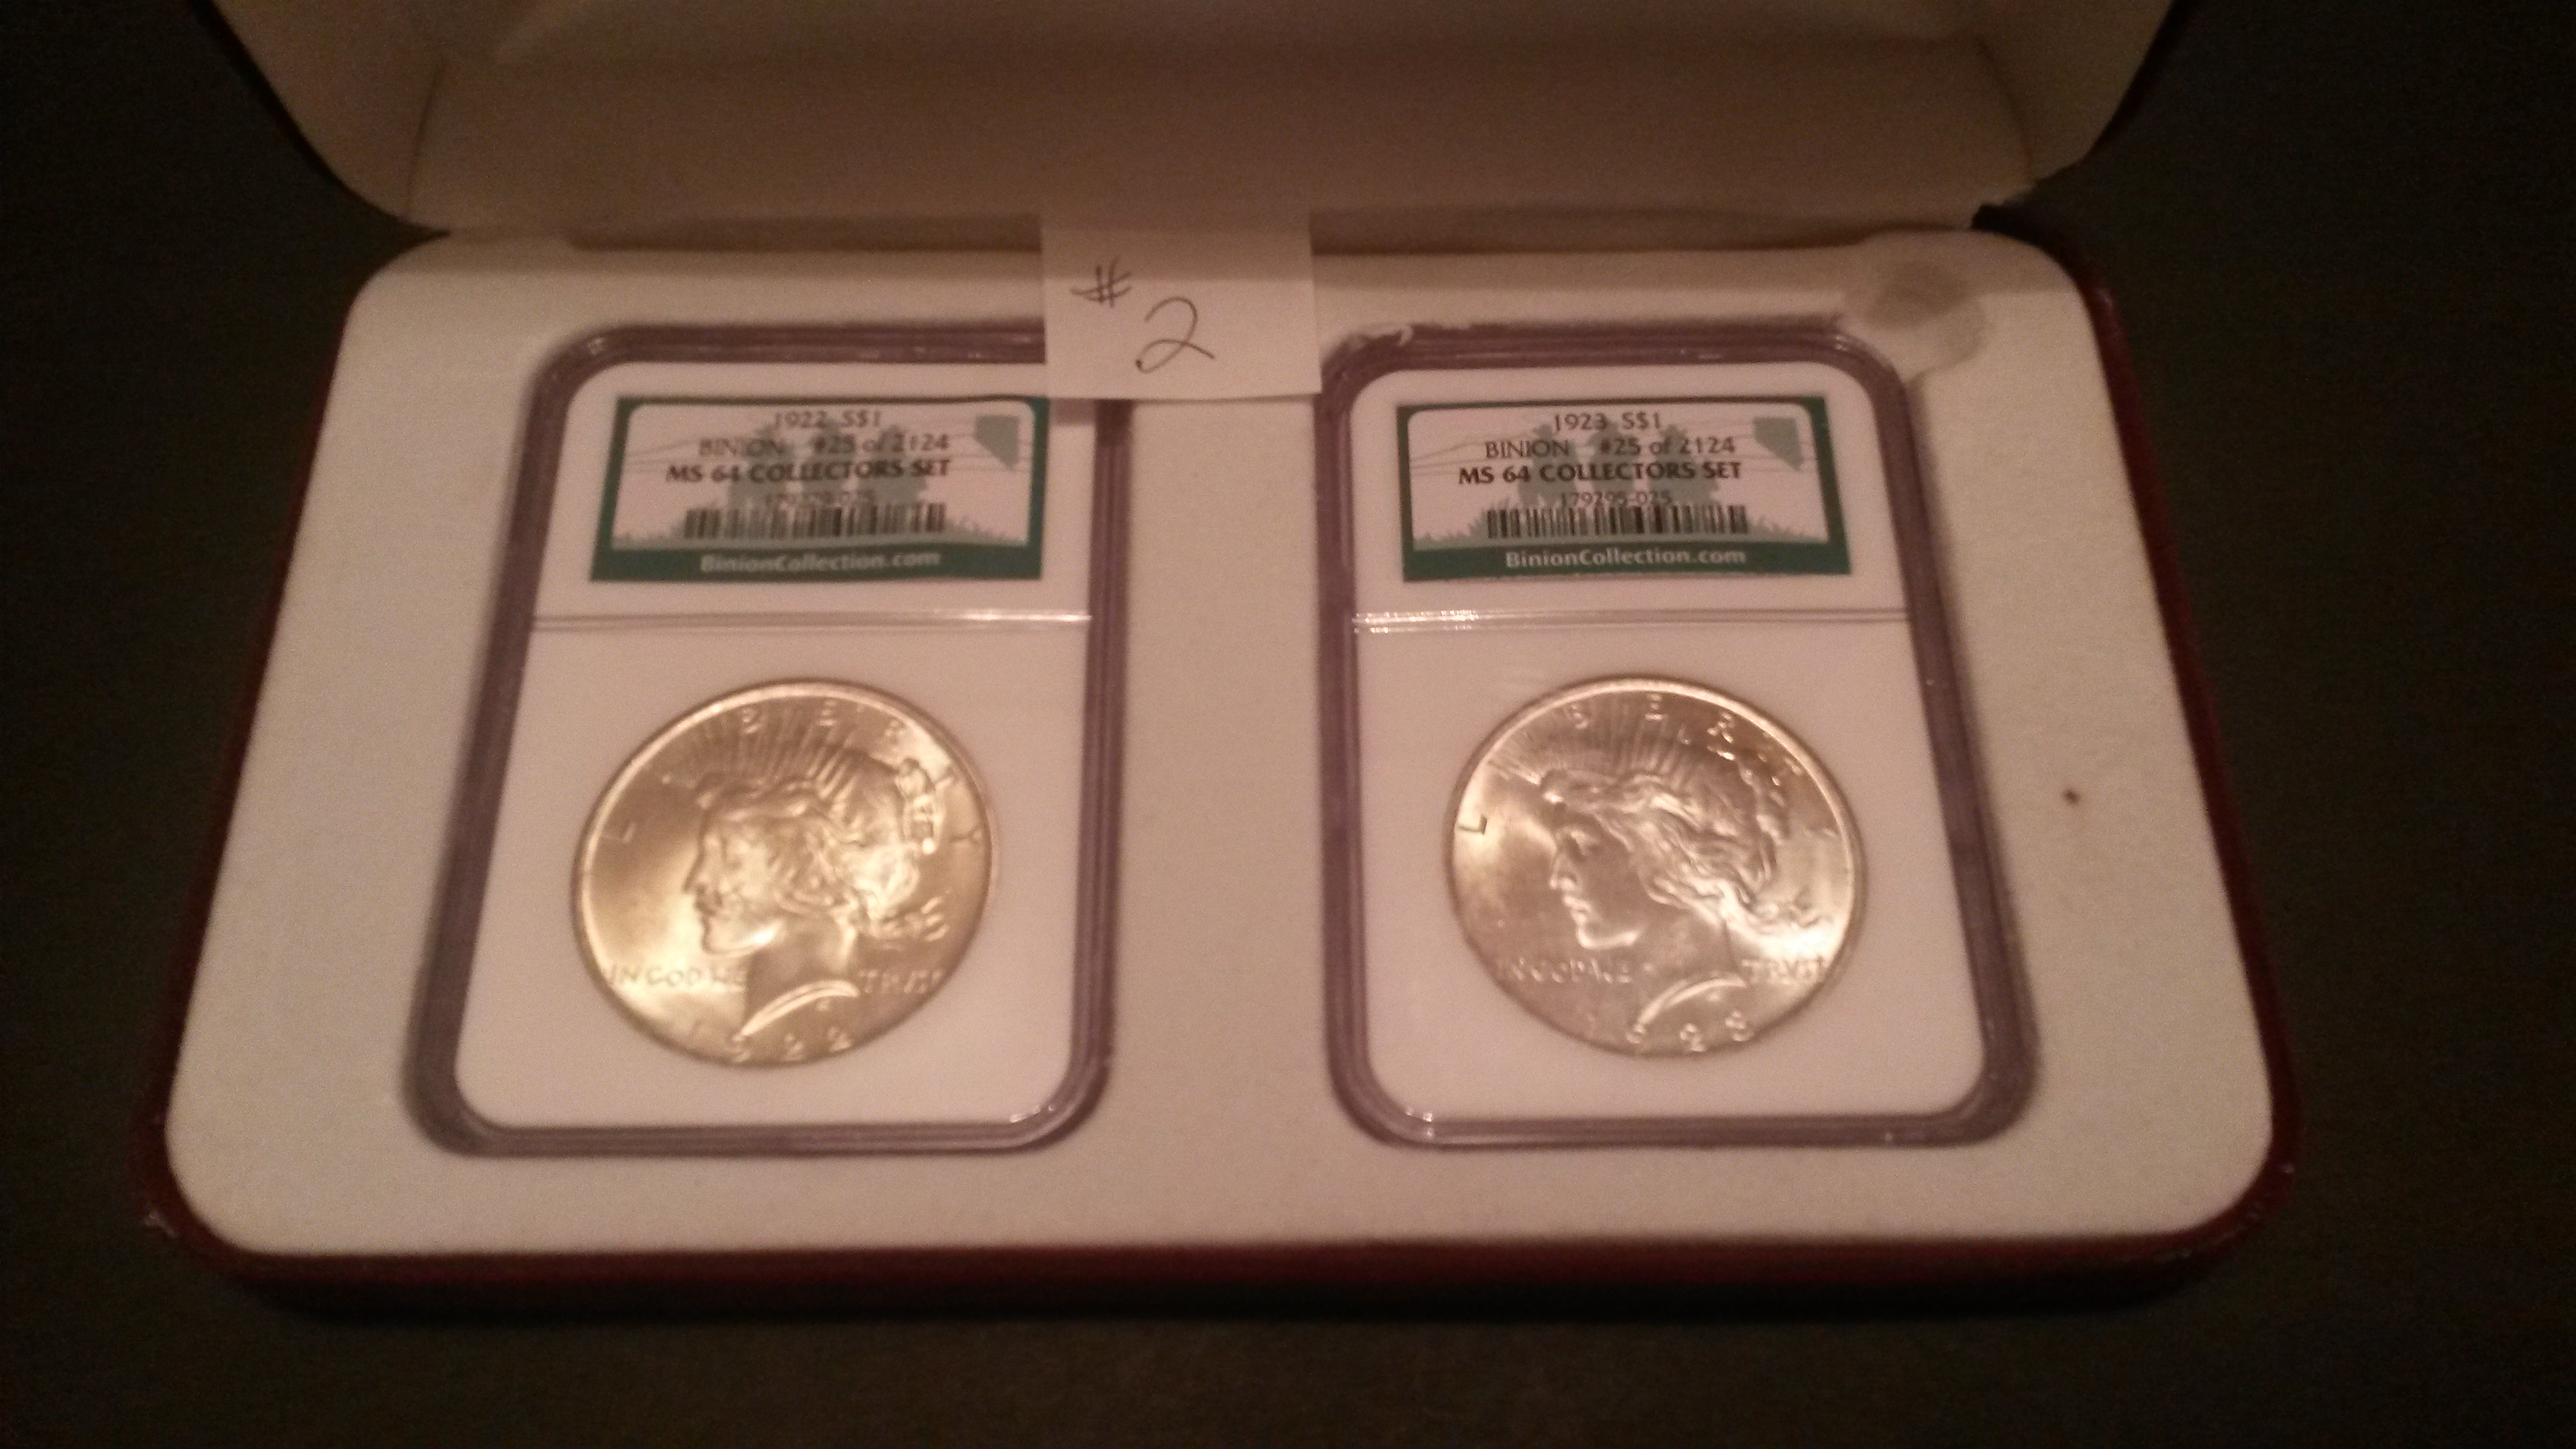 Ted Binion Silver Vault